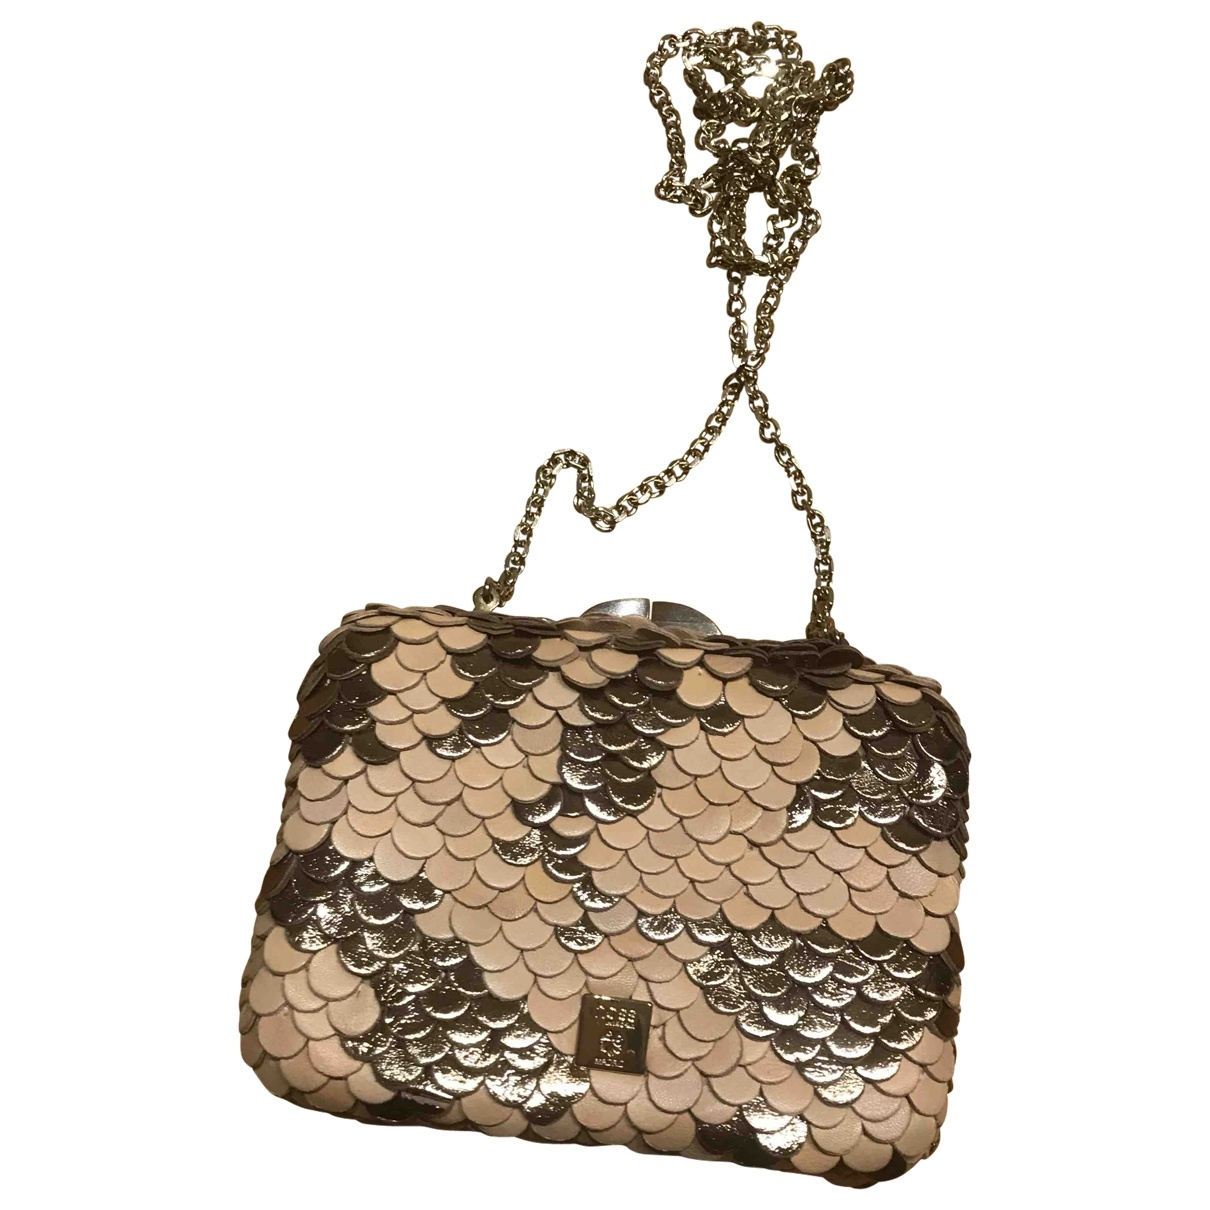 Hoss Intropia \N Clutch in  Beige Leder